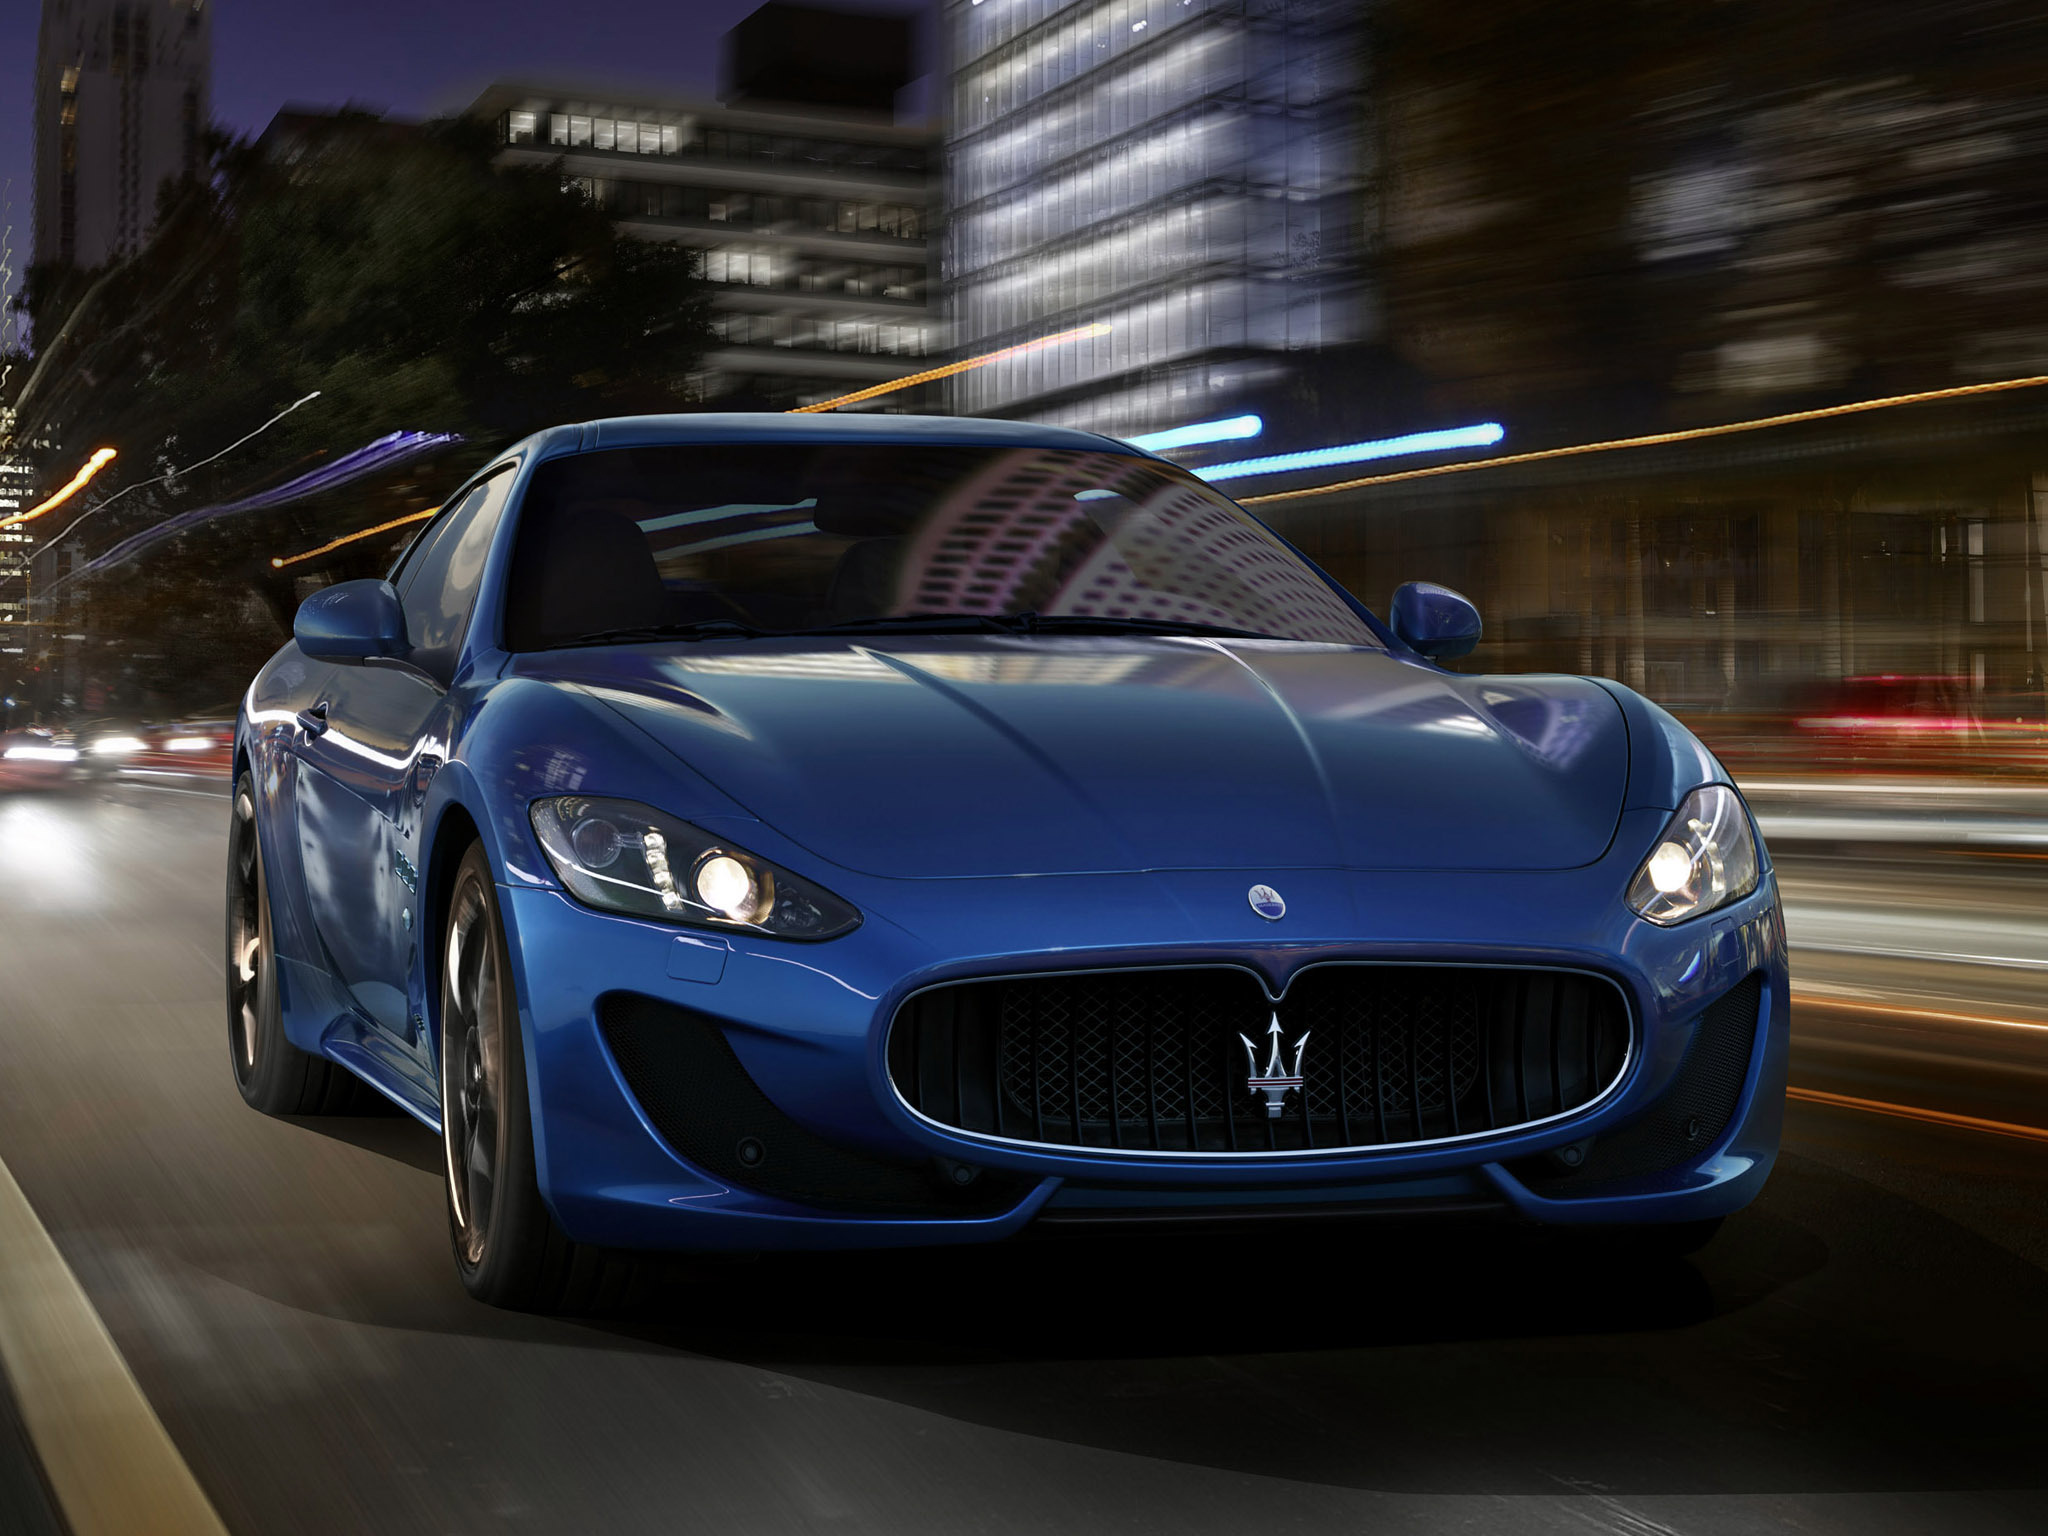 Maserati GranTurismo Wallpapers and Background Images   stmednet 2048x1536